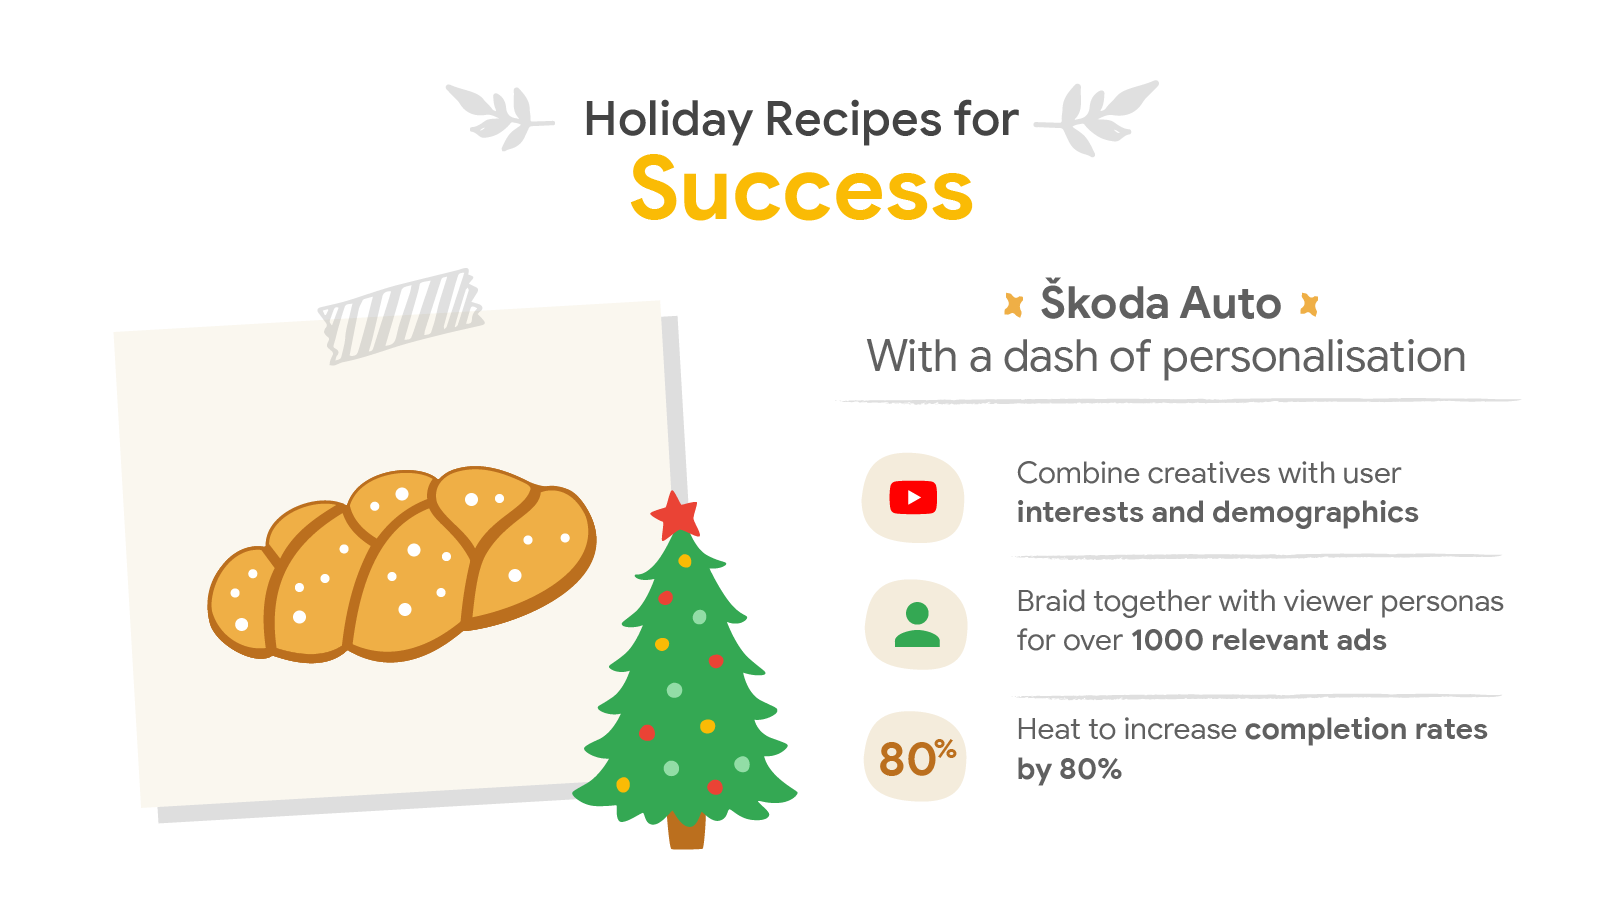 Holiday recipes for success: Real-life stories to inspire your 2020 campaigns-2